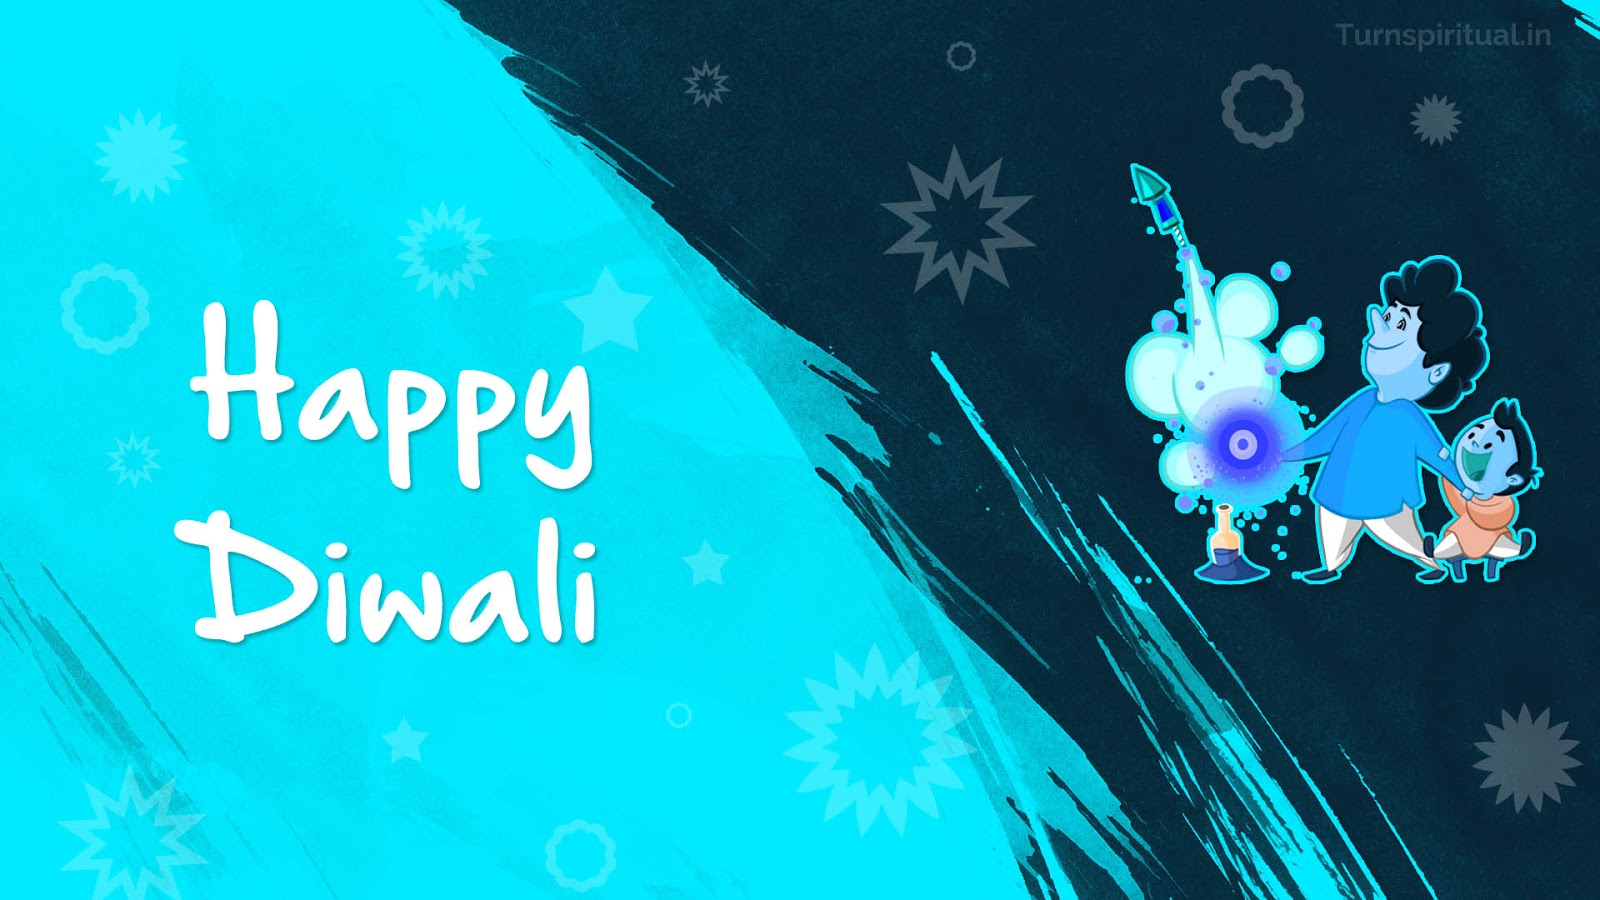 Happy diwali 2016 greeting cards diwali wishes quotes diwali happy diwali hd greetings 2016 kristyandbryce Image collections